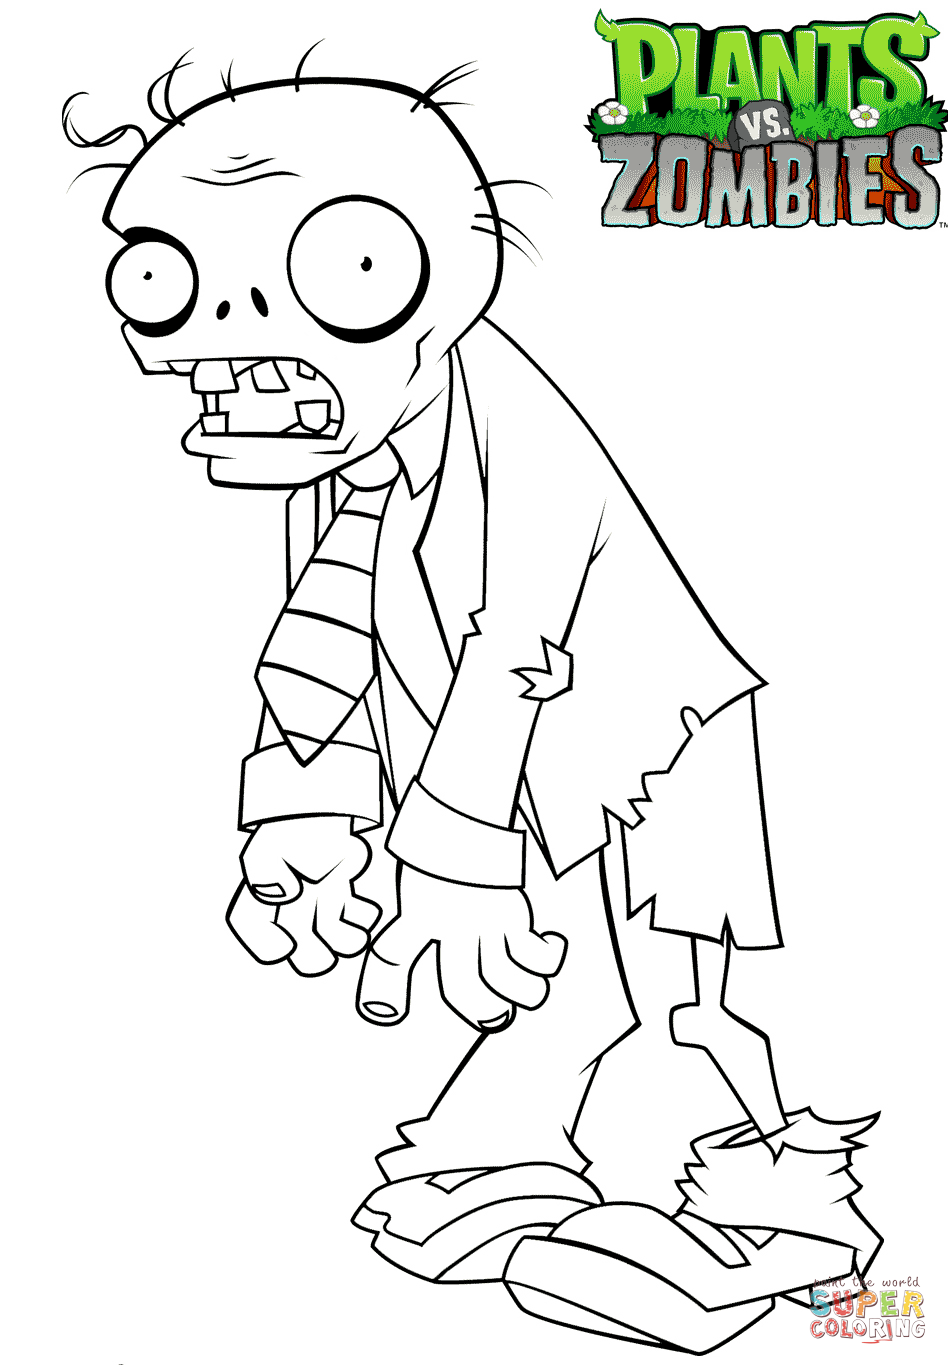 Plants Vs Zombies Printable Coloring Pages.